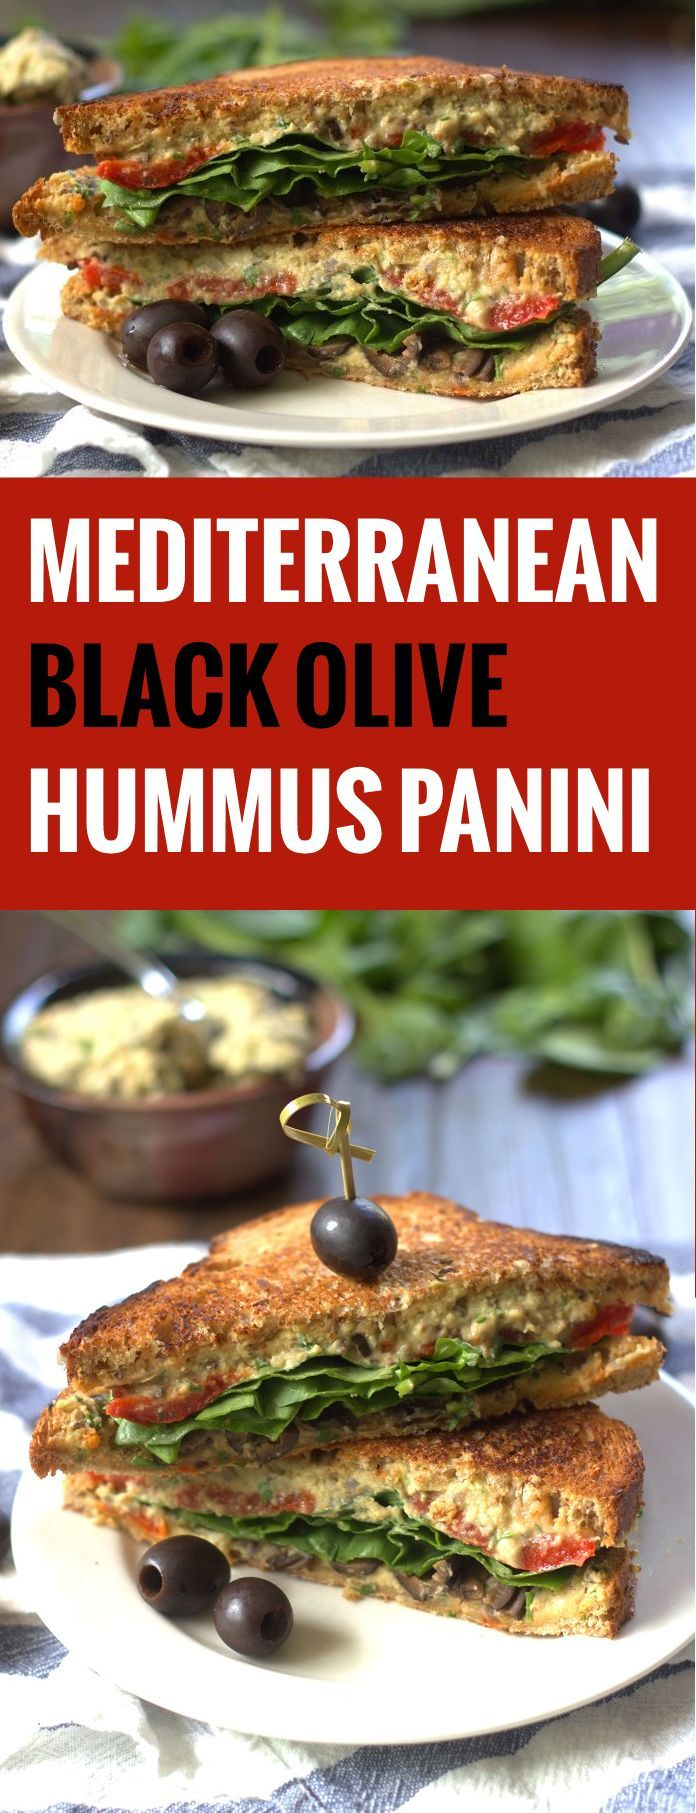 Grilled Mediterranean Black Olive Hummus Panini Sandwiches #CalOlivesMedRecipe